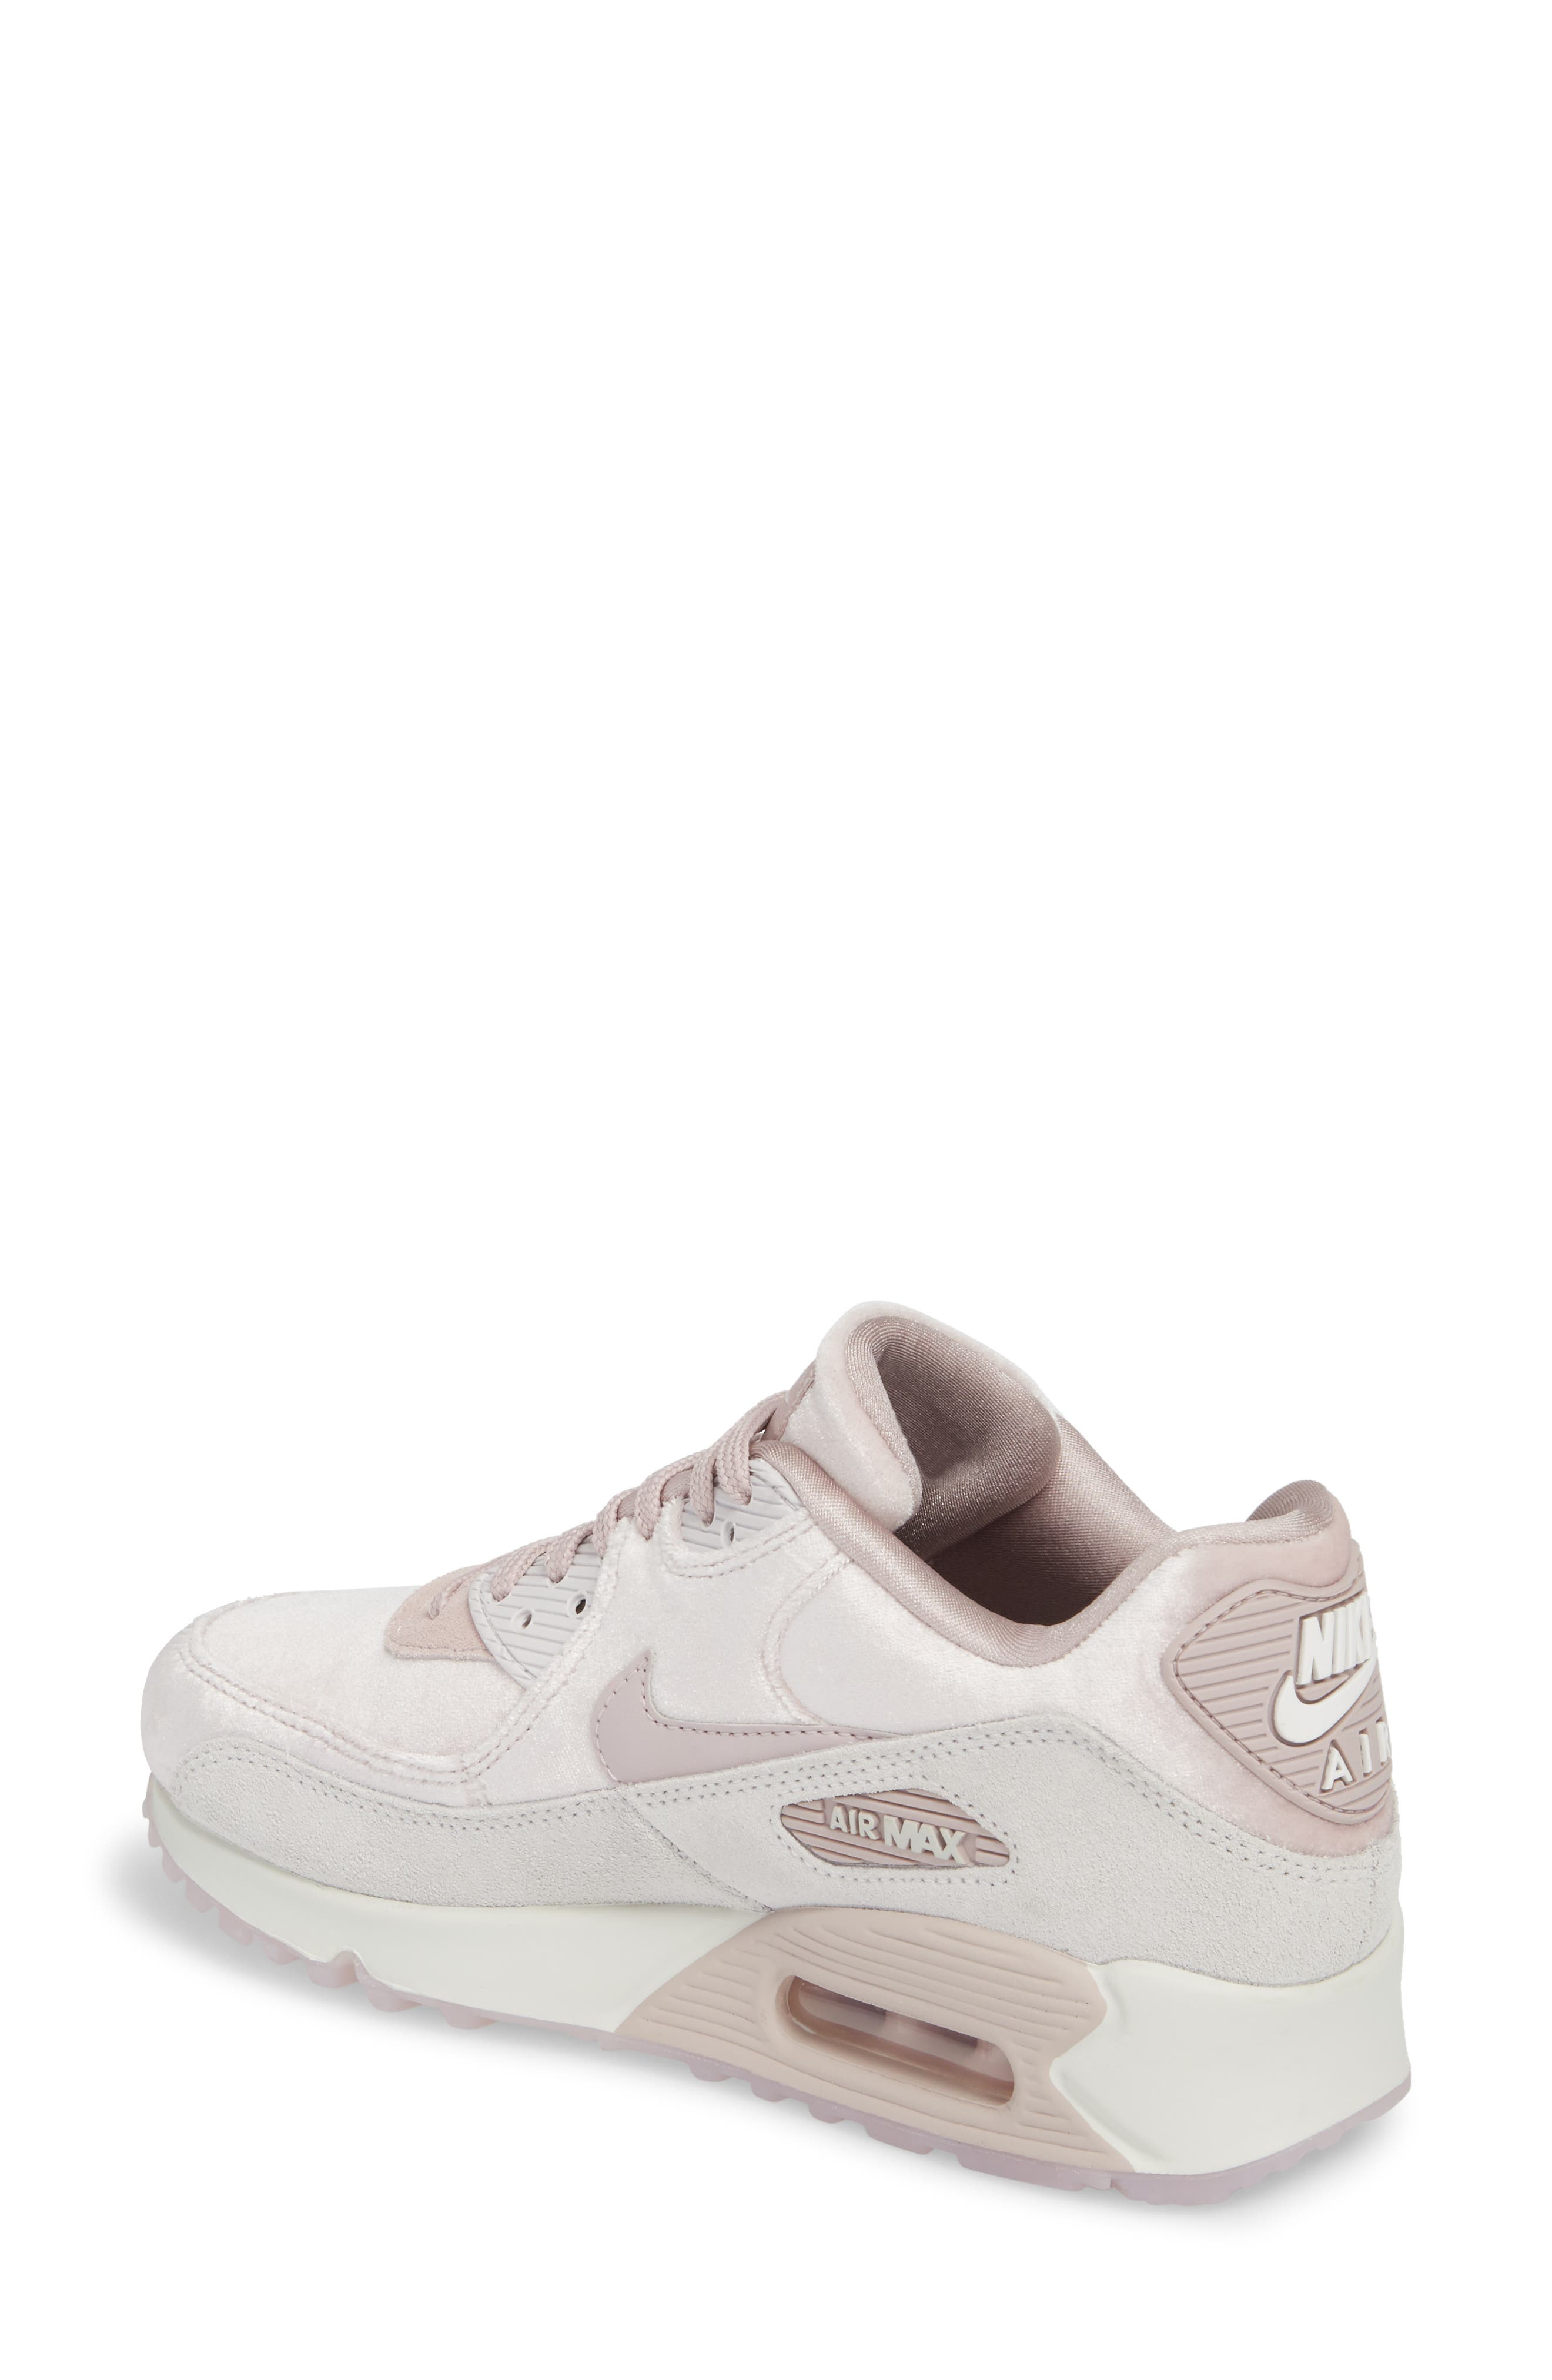 Air Max 90 LX Sneaker,                             Alternate thumbnail 2, color,                             Particle Rose/ Particle Rose